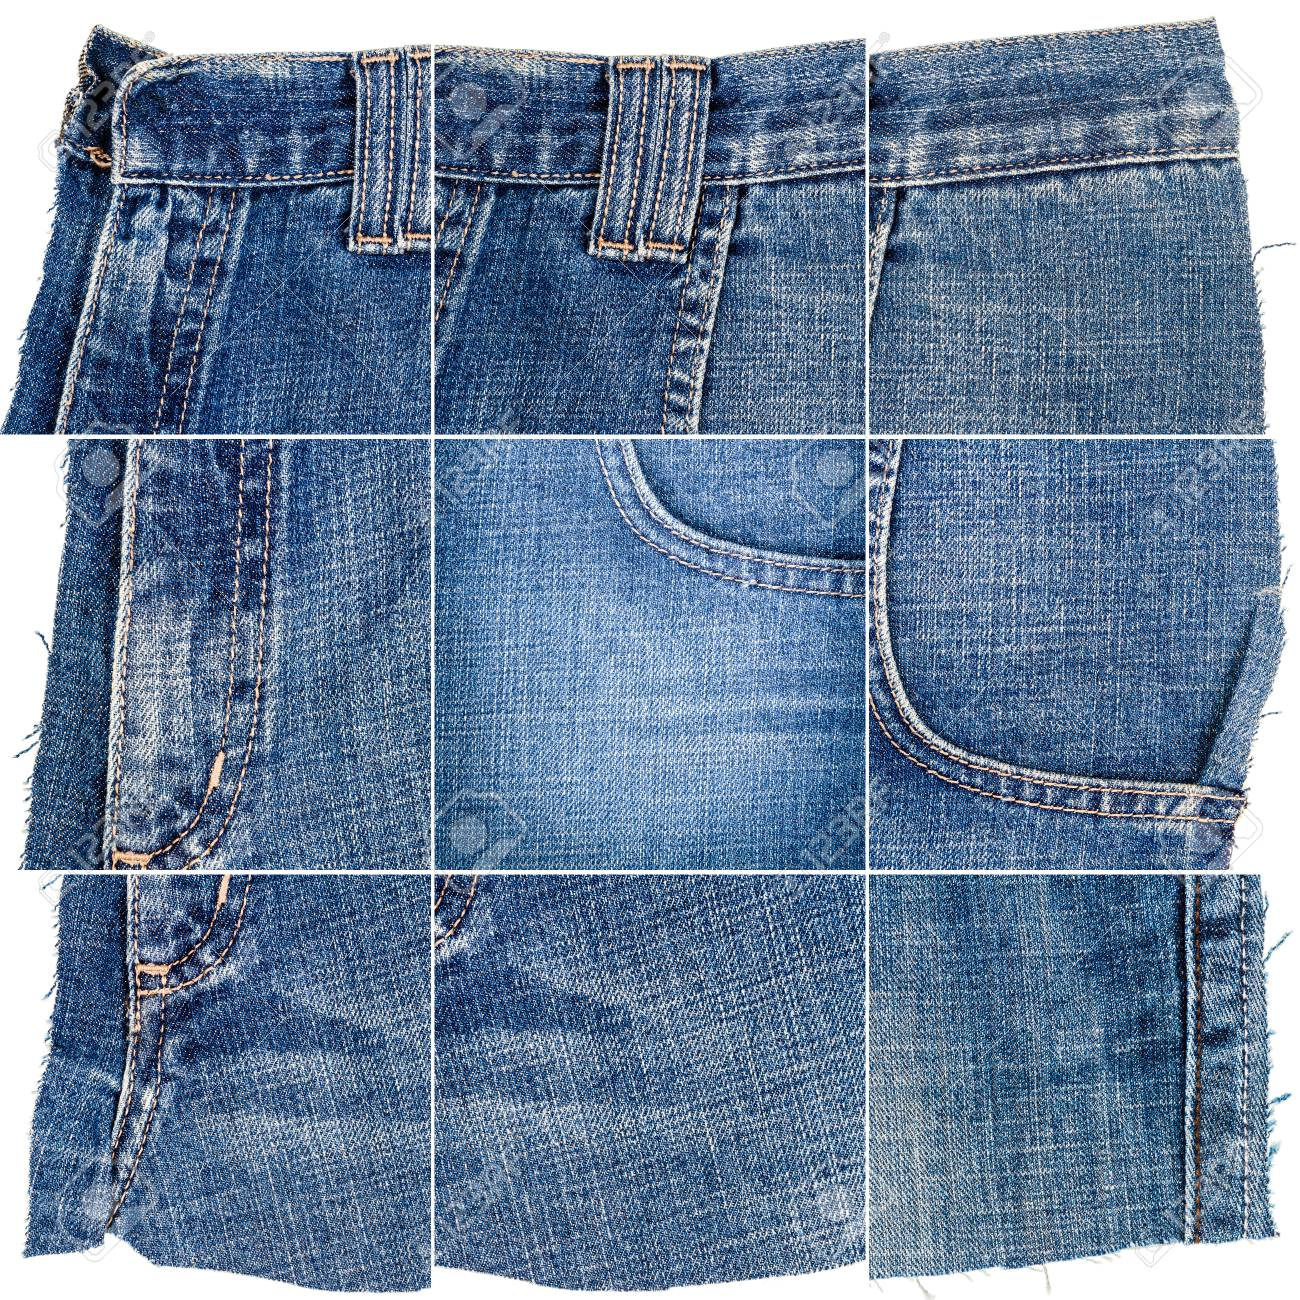 Collection of blue jeans fabric textures isolated on white background. Rough uneven edges. Composite image of denim material with pocket. - 121095727